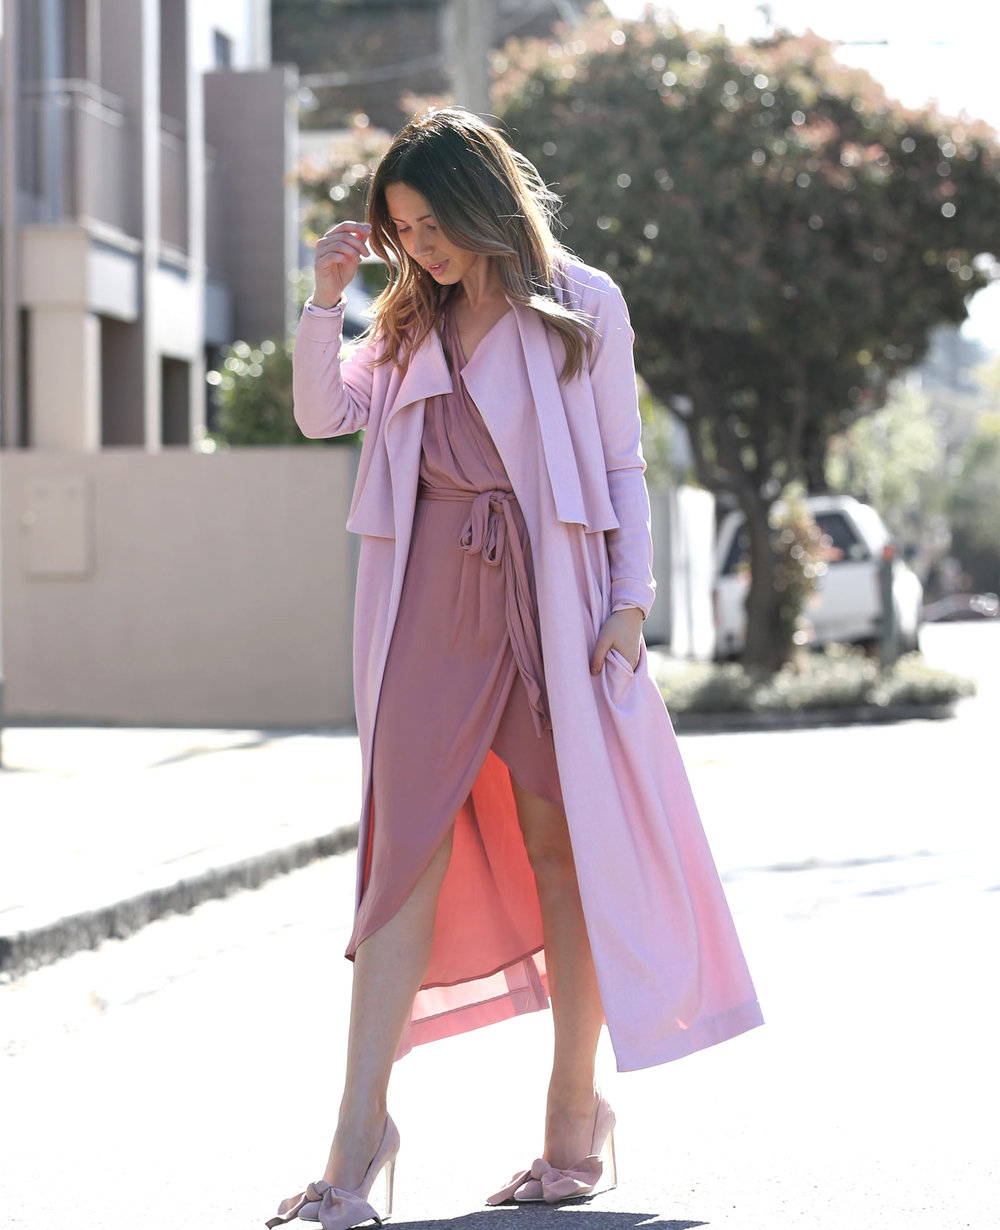 FriendinFashion_WhoWhatWear_OneColour_3.jpg